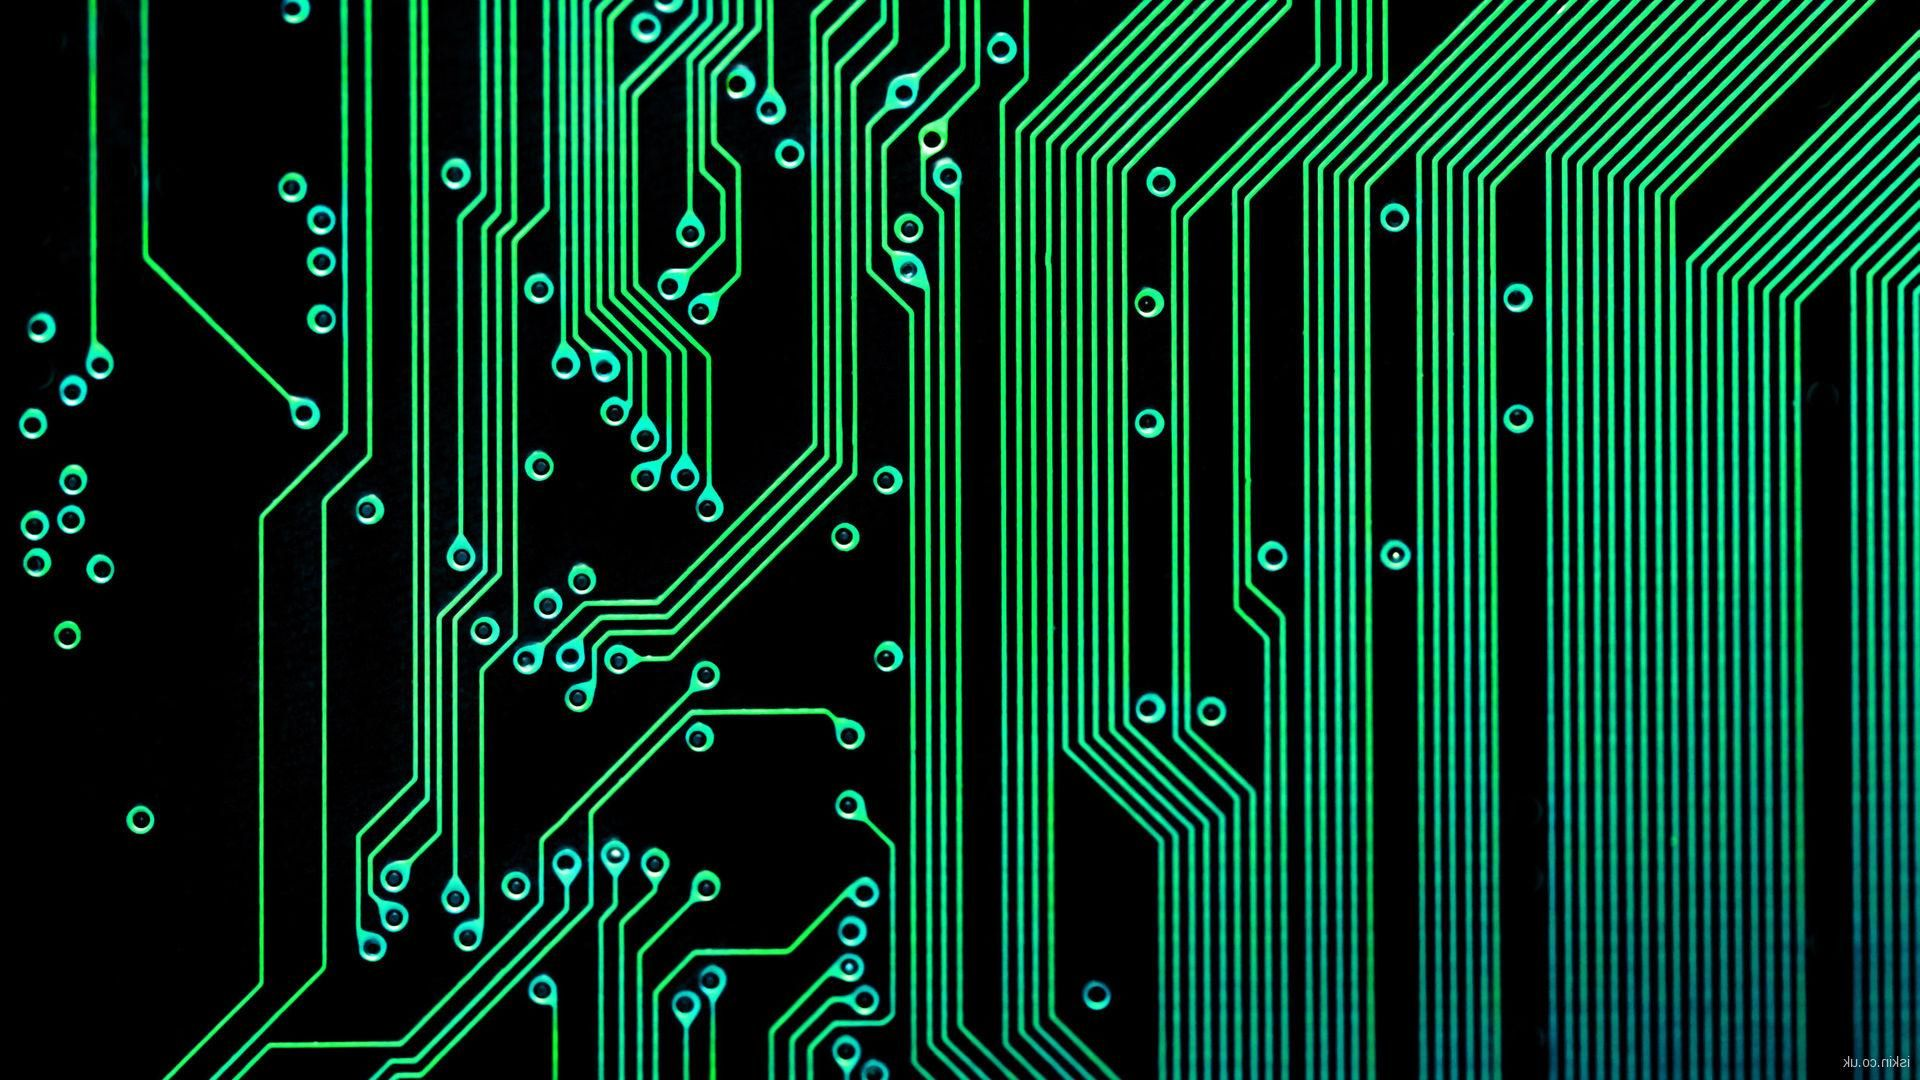 Electronic Circuit Hd Wallpaper 1920x1080 Id 36369 Electronics Circuit Electronics Wallpaper Technology Wallpaper